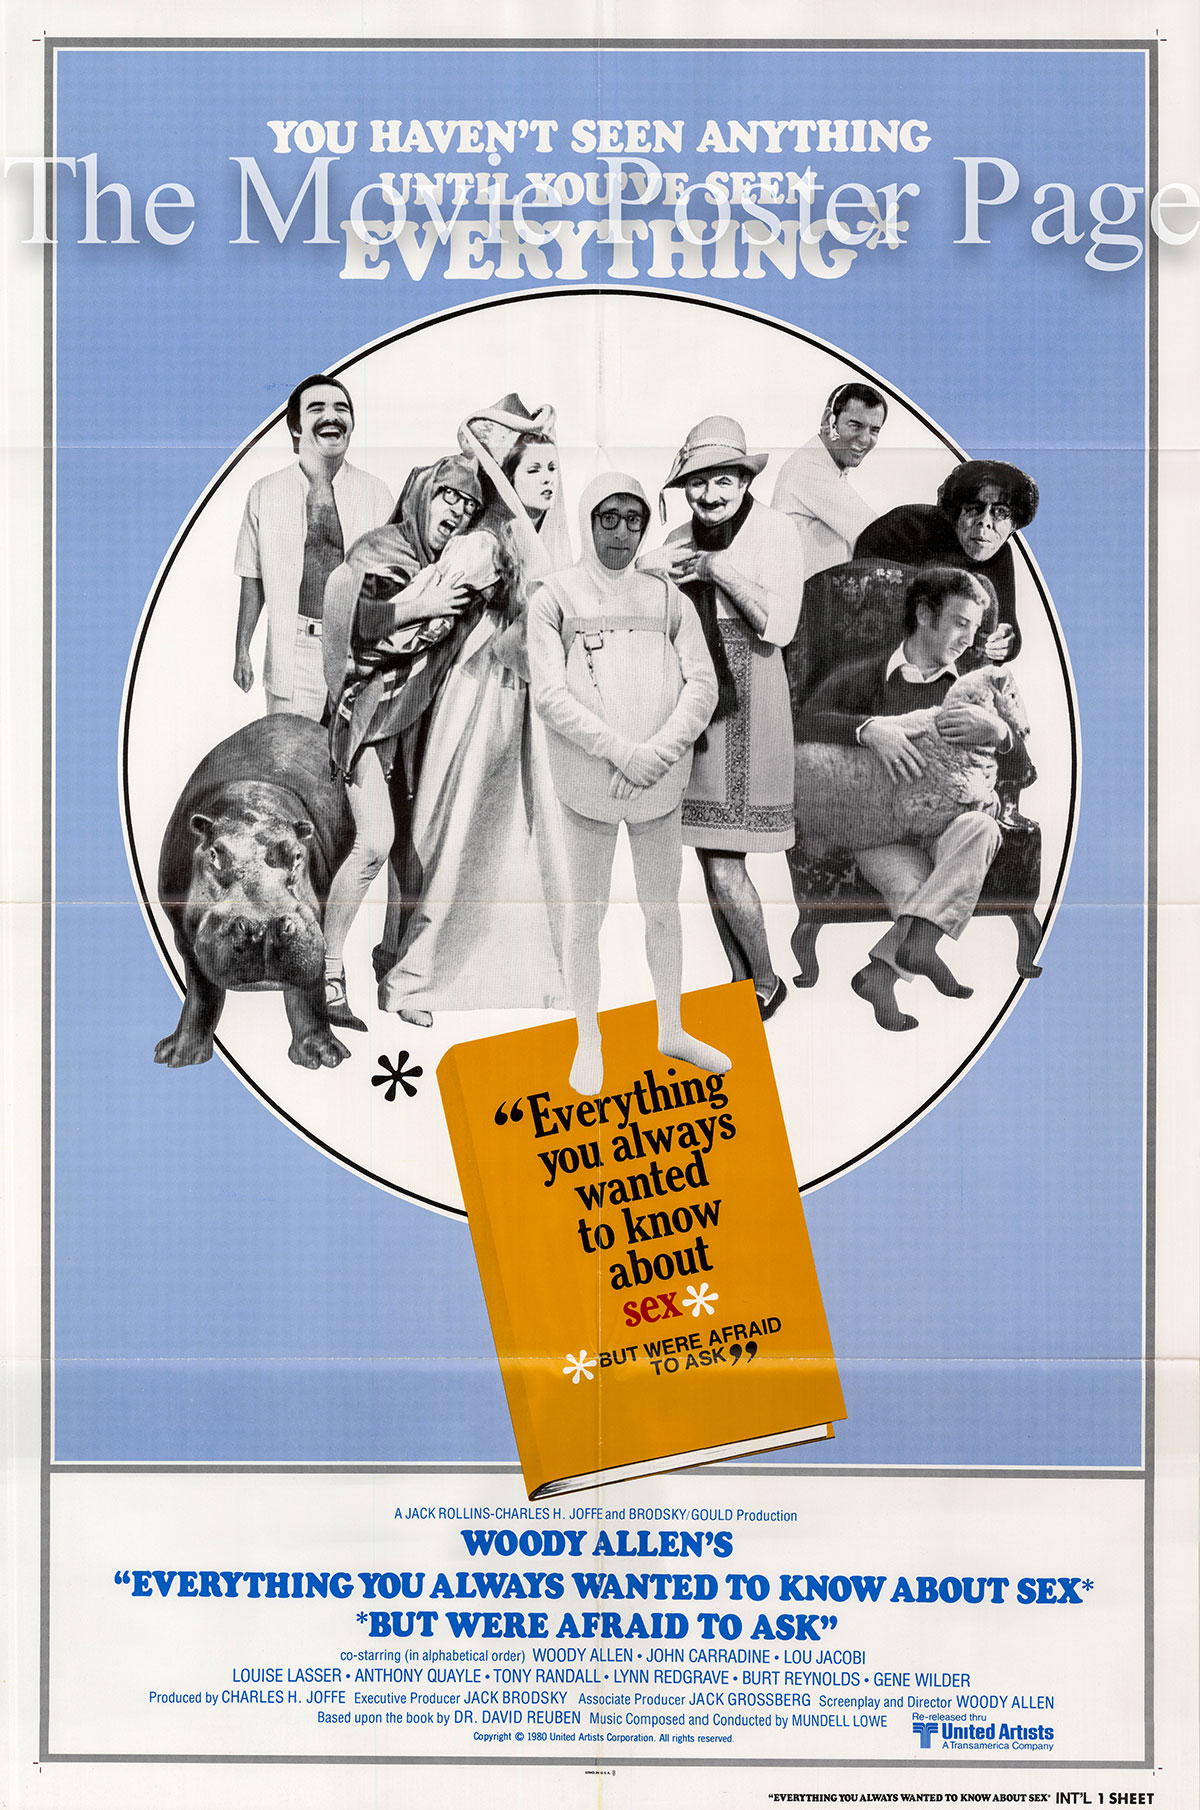 Pictured is an international one-sheet poster for a 1980 rerelease of the 1972 Woody Allen film Everything You Always Wanted to Know about Sex starring Woody Allen.